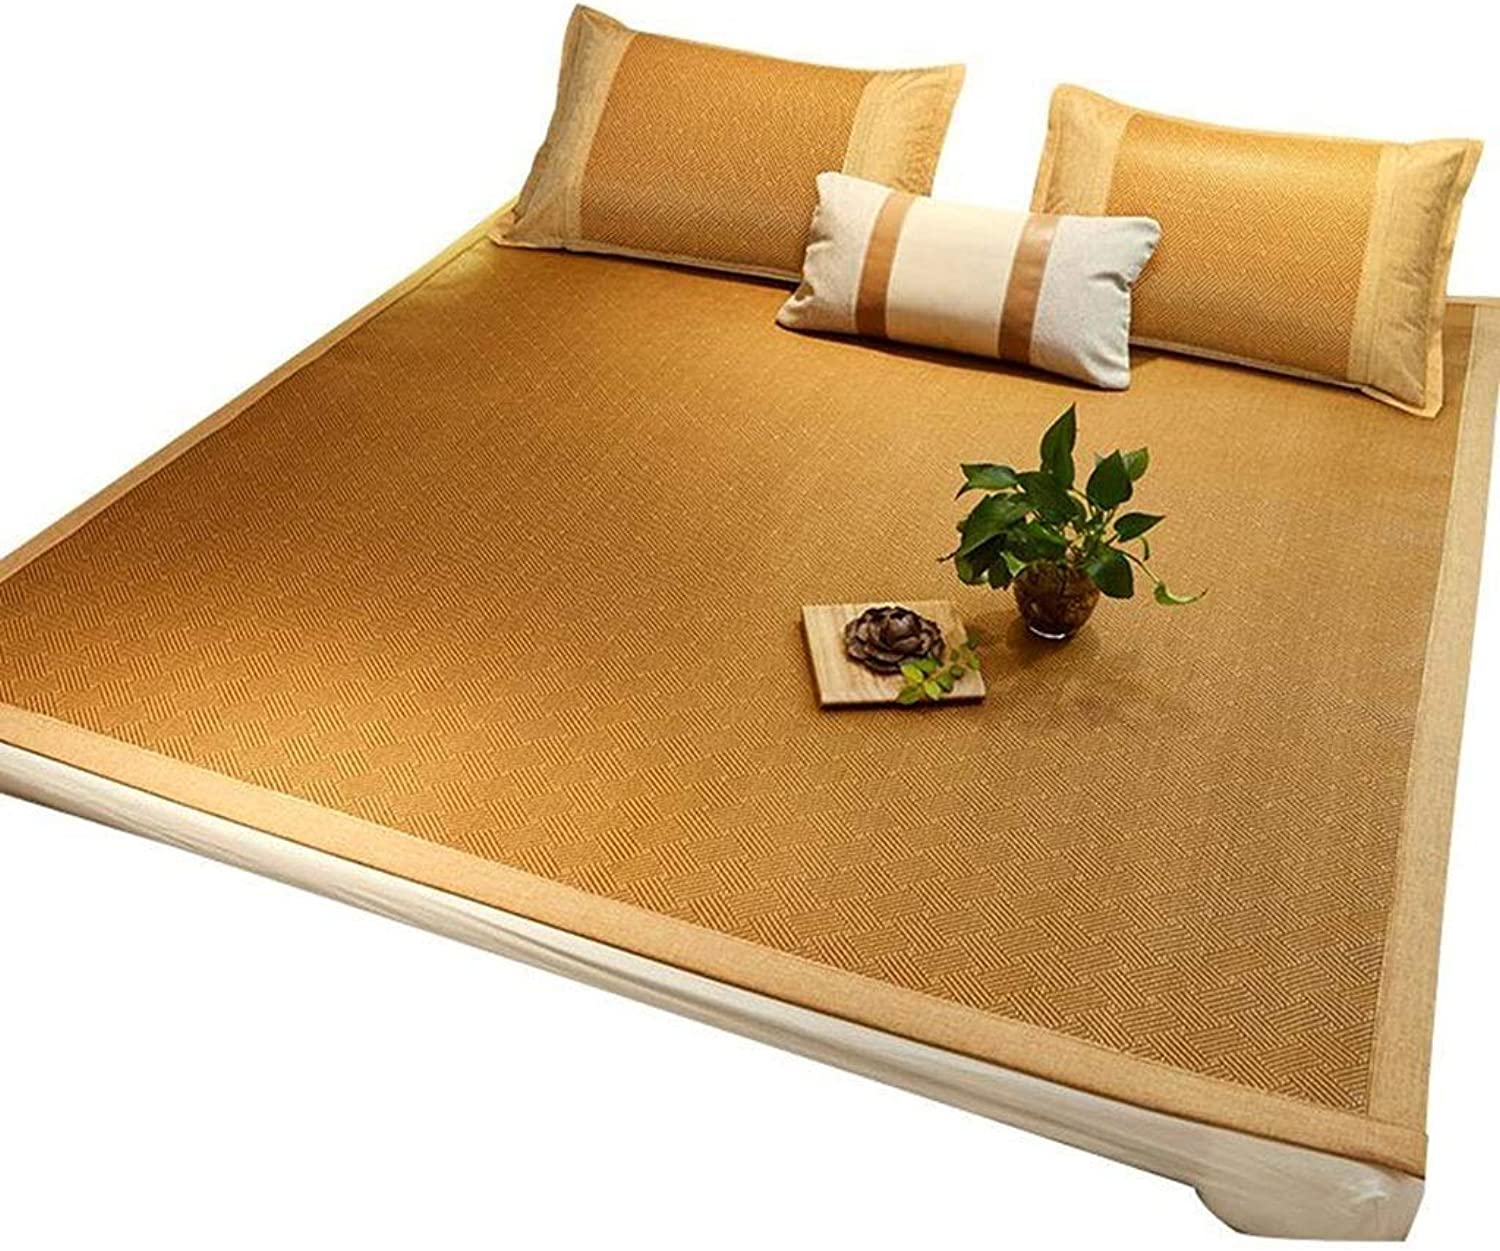 Summer Sleeping Bedding Mat Mattress Rattan Bed Cooling Topper Pad Cushion Foldable Double Single Bed (Size   120X195cm)